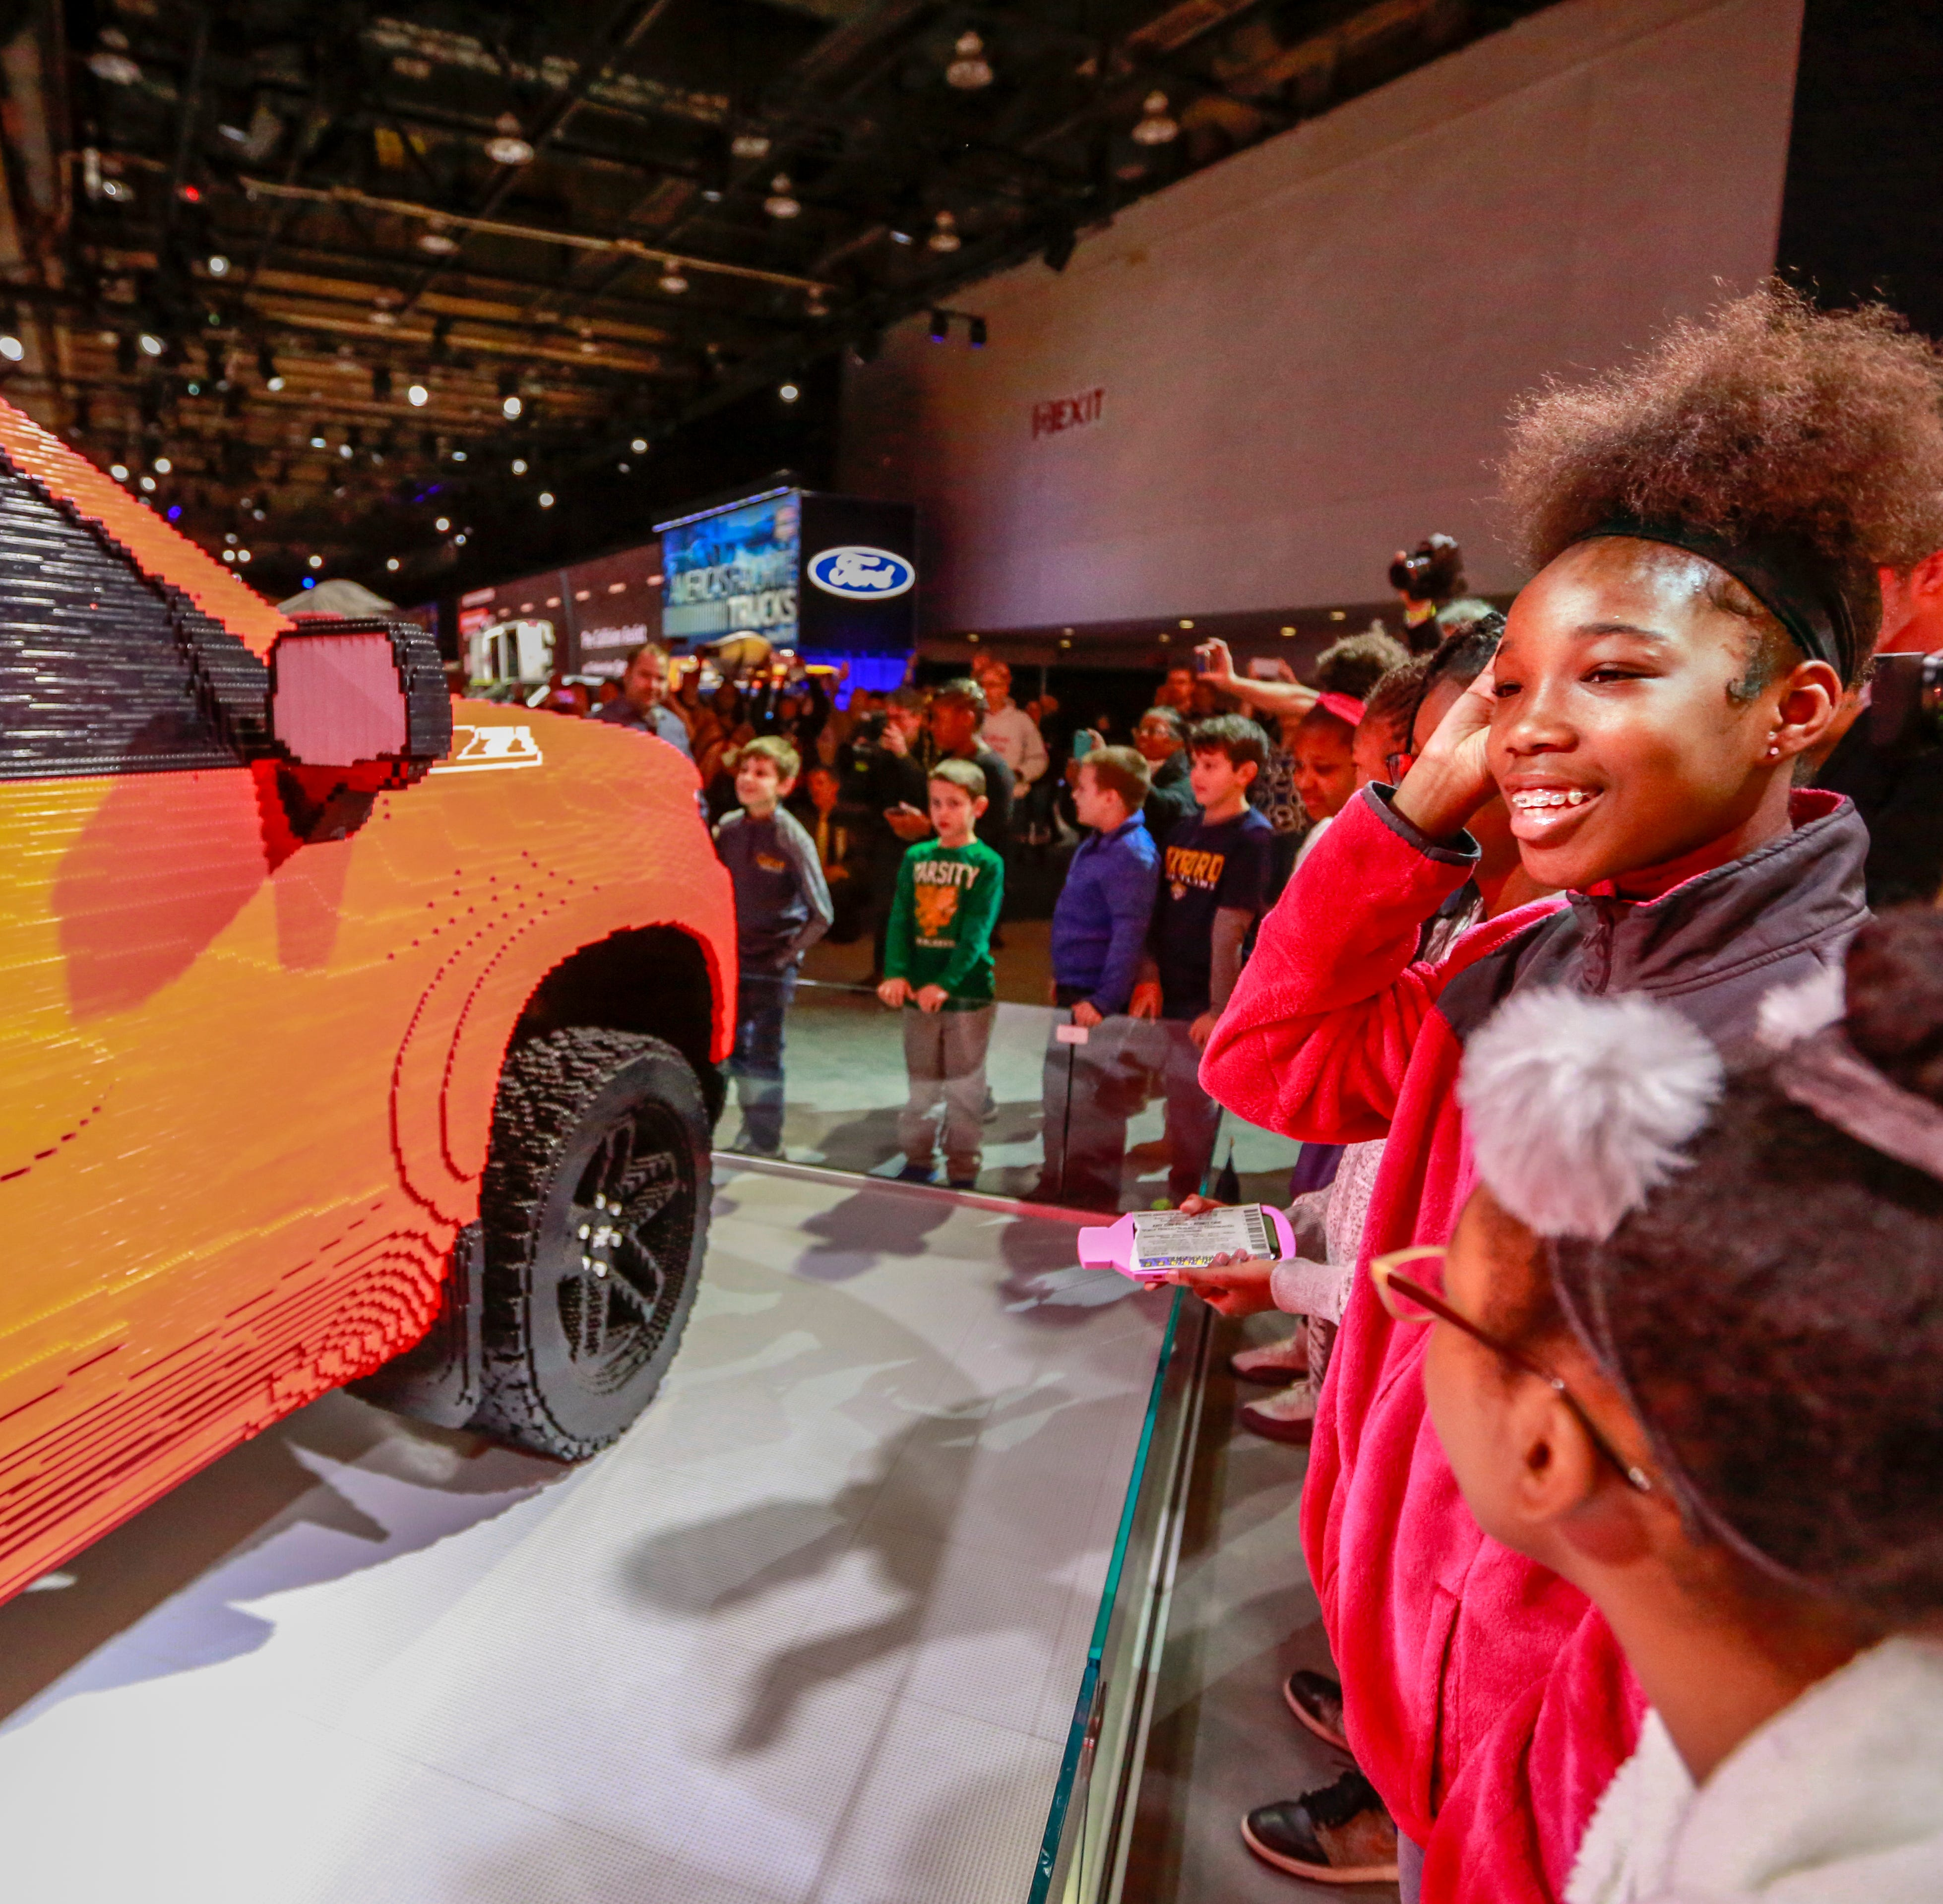 Chevrolet unveils first full-size LEGO Silverado to students at auto show